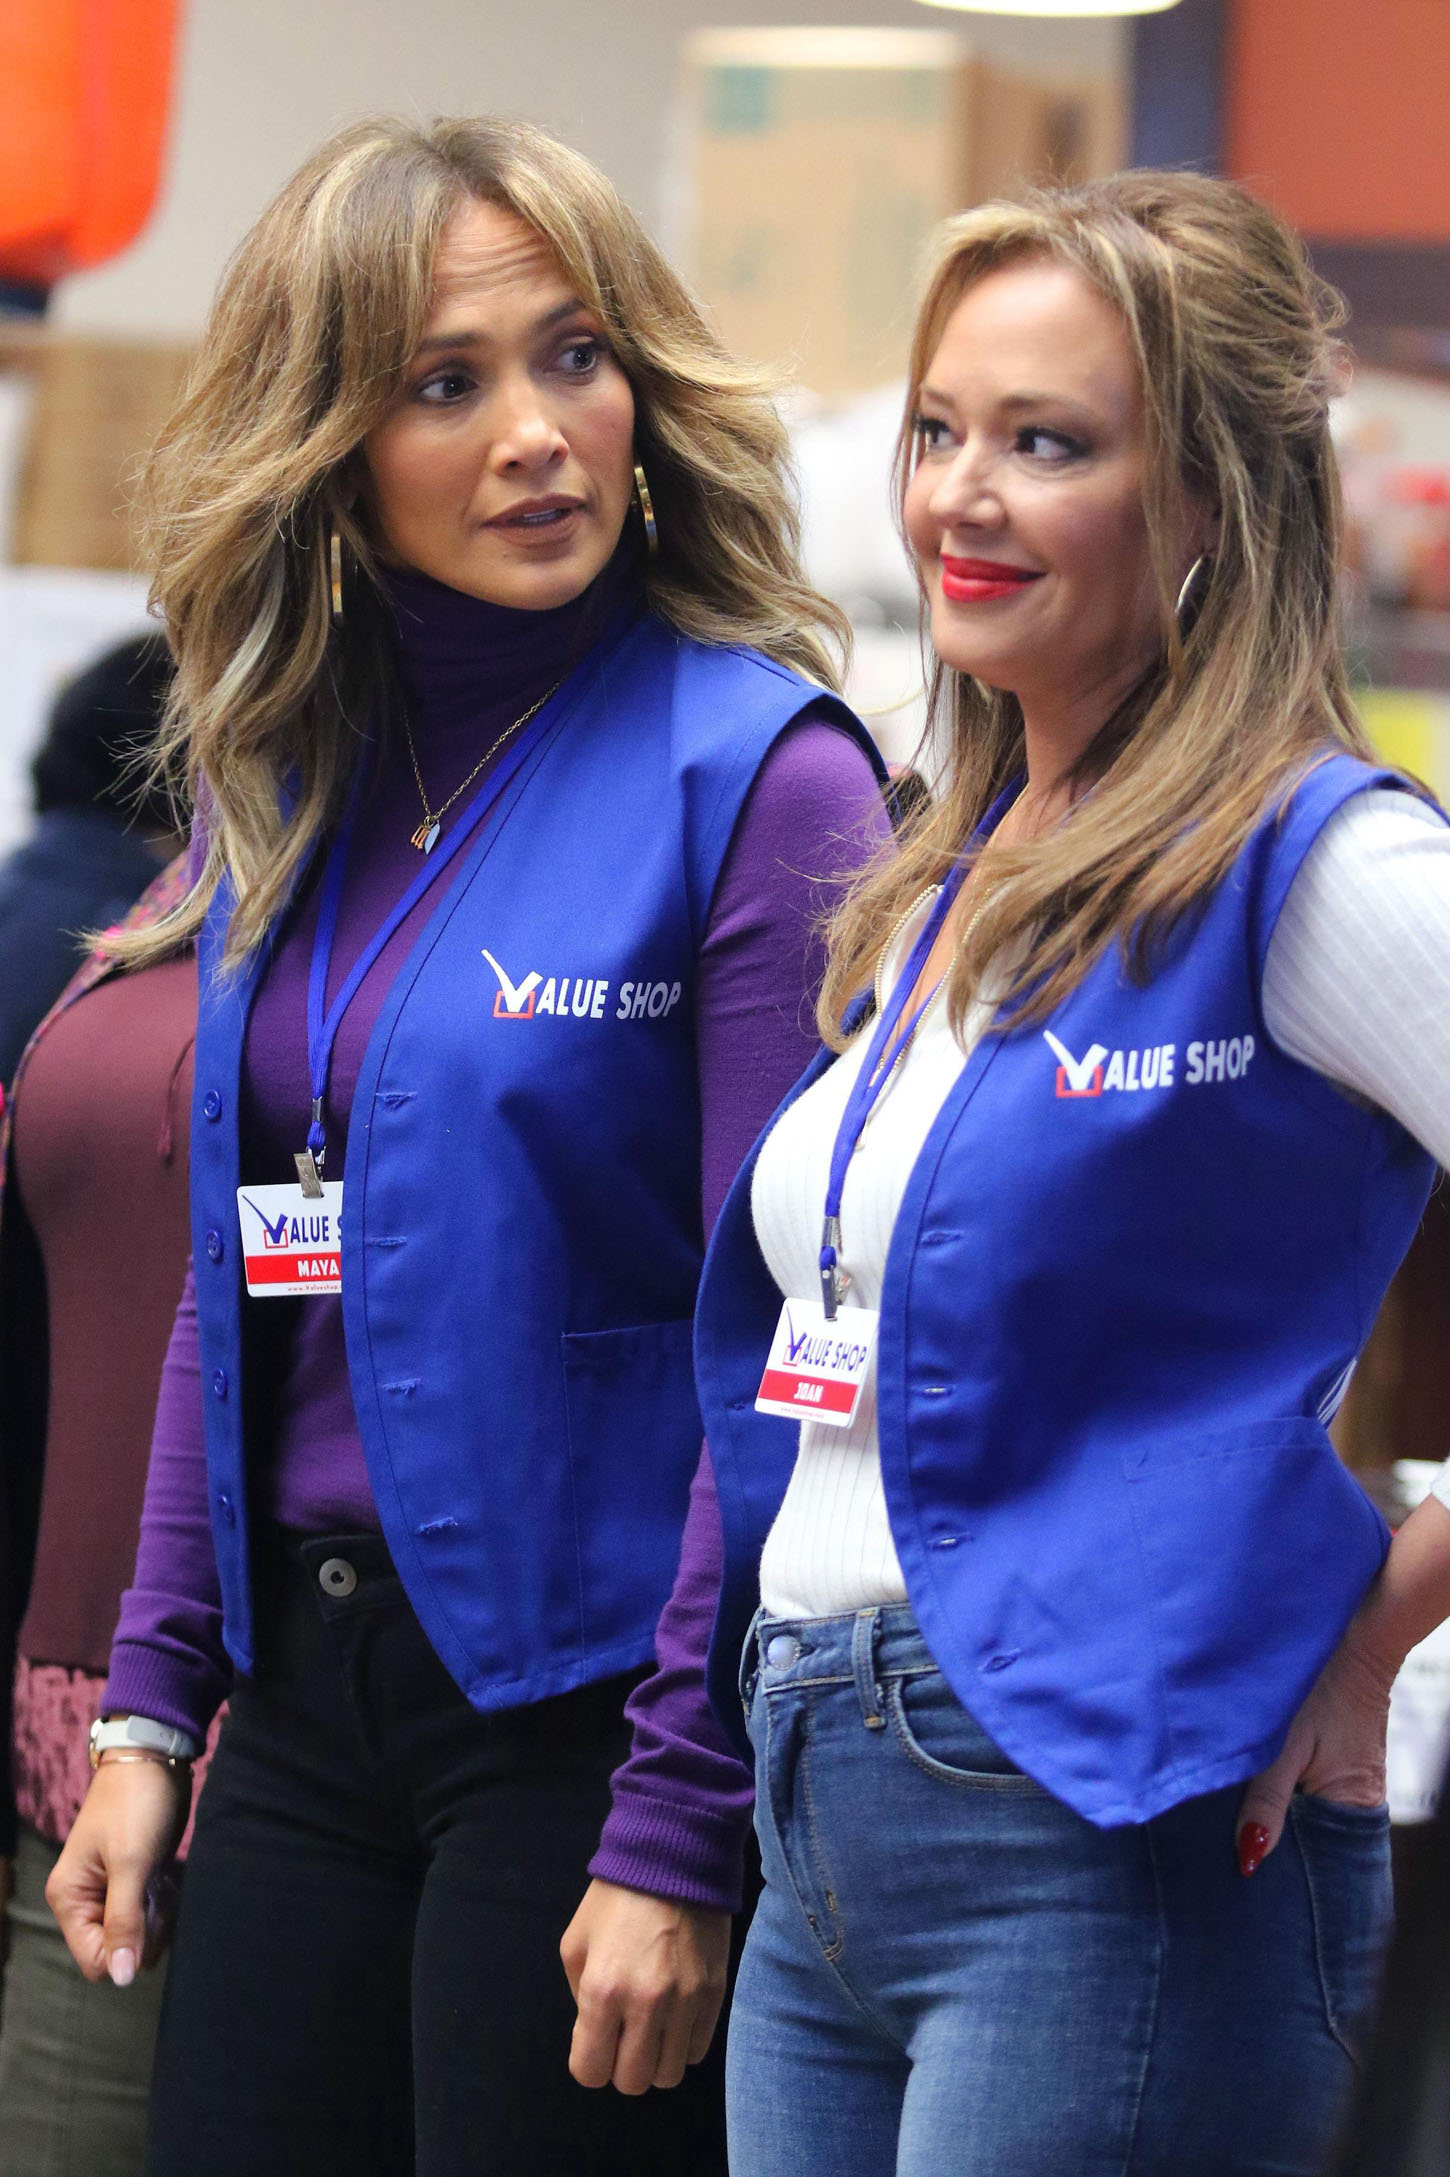 Jennifer Lopez and BFF costar Leah Remini filming scenes for their upcoming movie Second Act where they will be playing supermarket workers in Astoria. New York, NY - Tuesday October 24, 2017, Image: 353787302, License: Rights-managed, Restrictions: , Model Release: no, Credit line: Profimedia, Pacific coast news